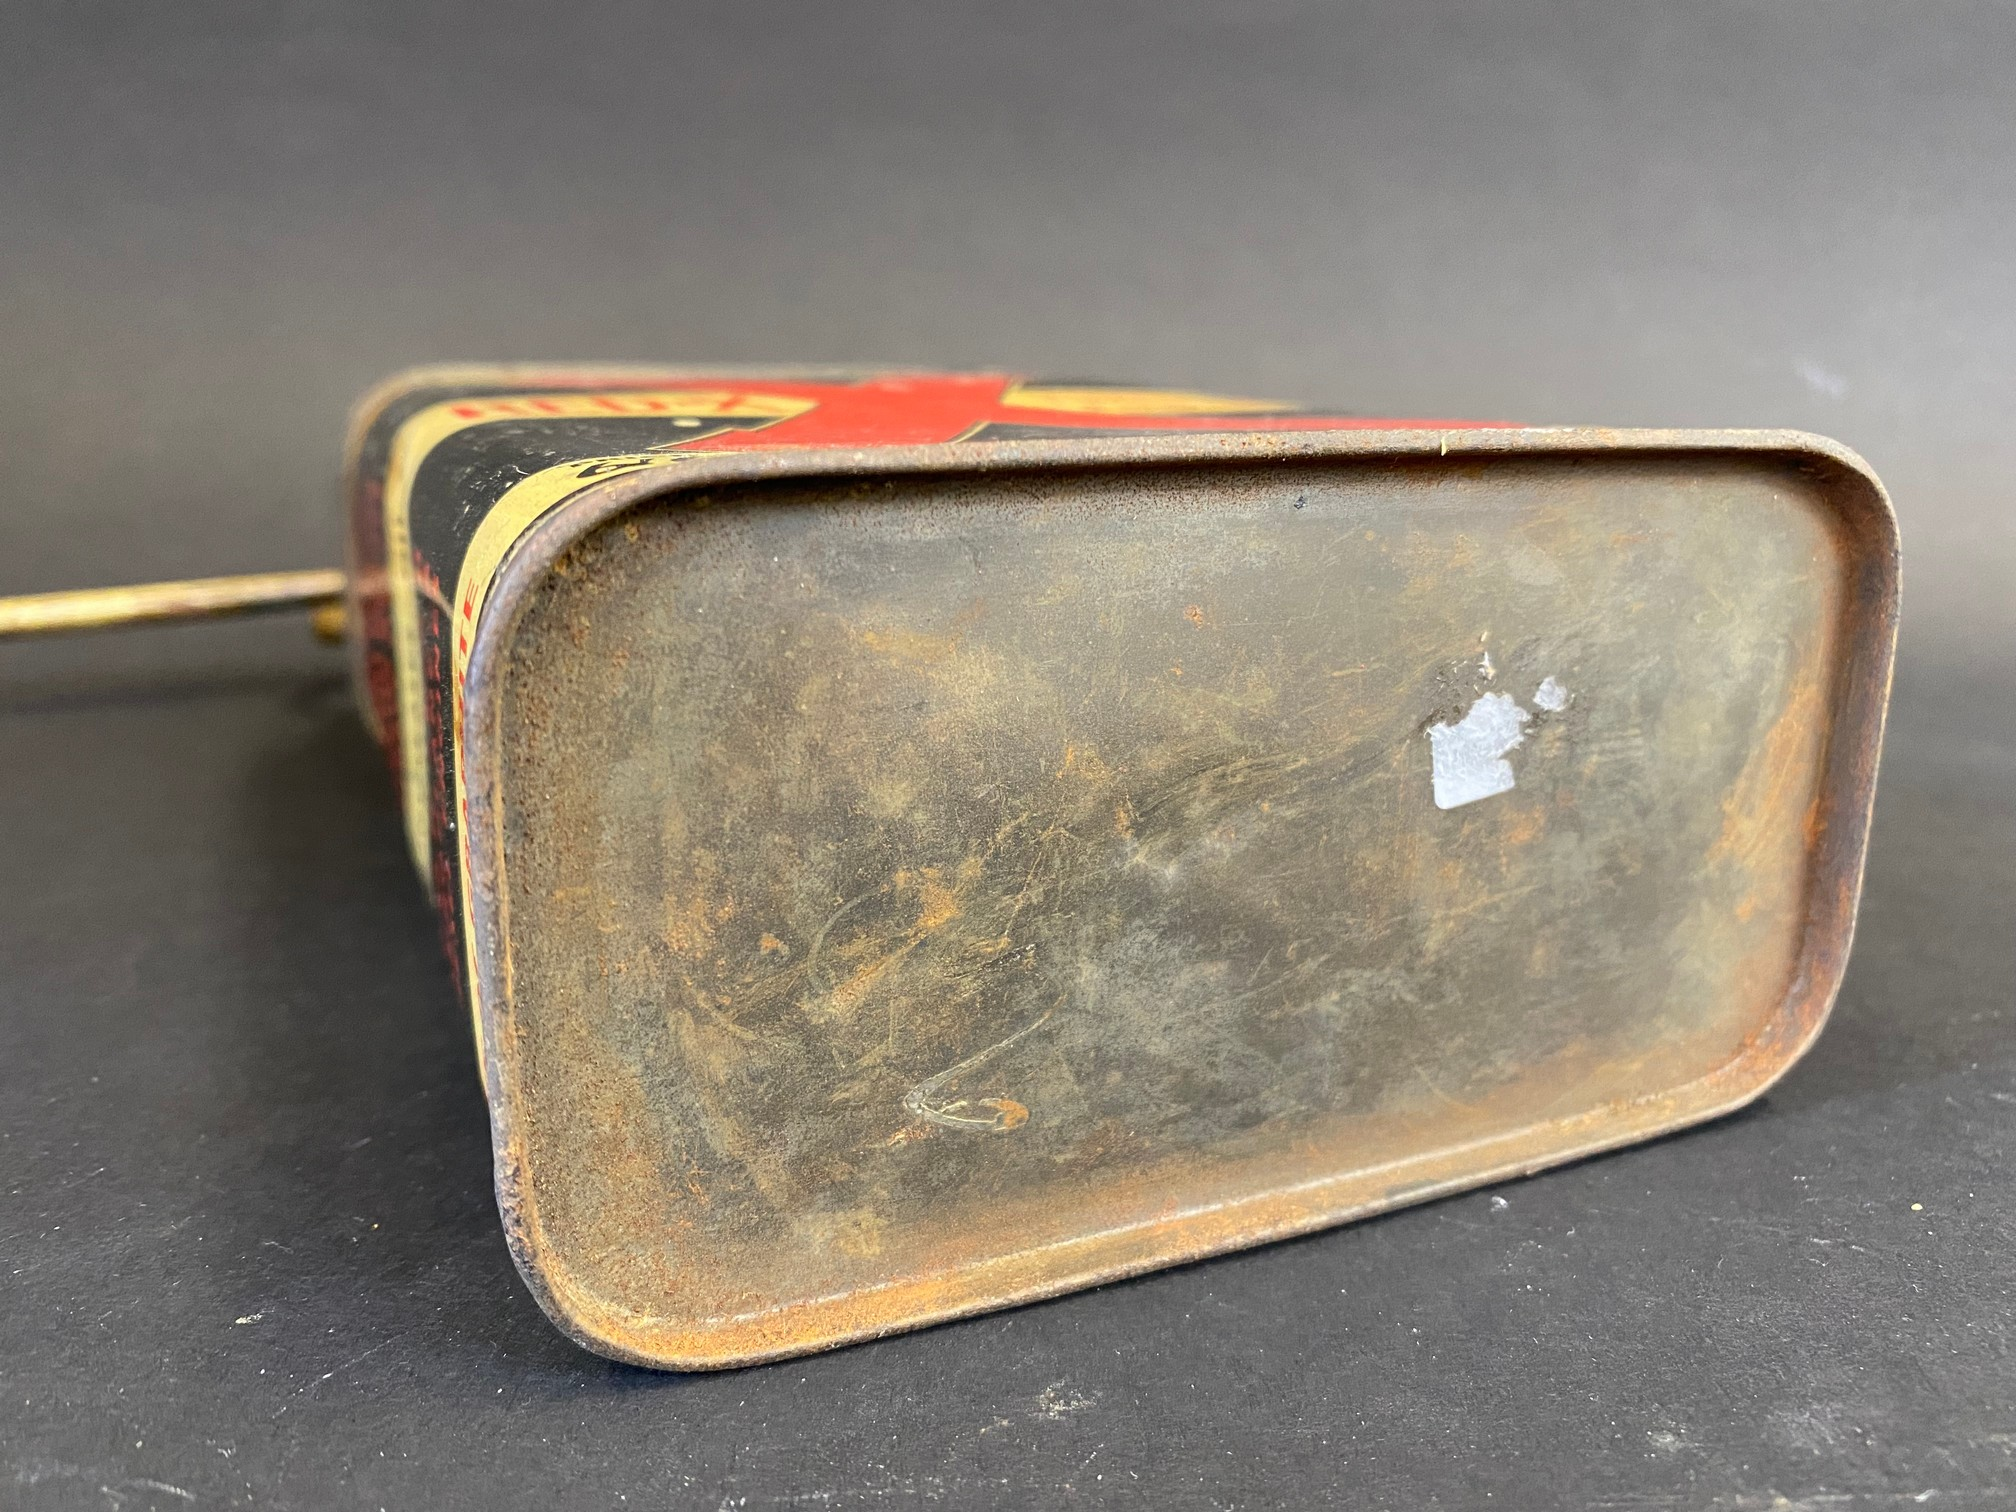 A Redex rectangular quart additive tin with brass plunger and spout. - Image 4 of 4